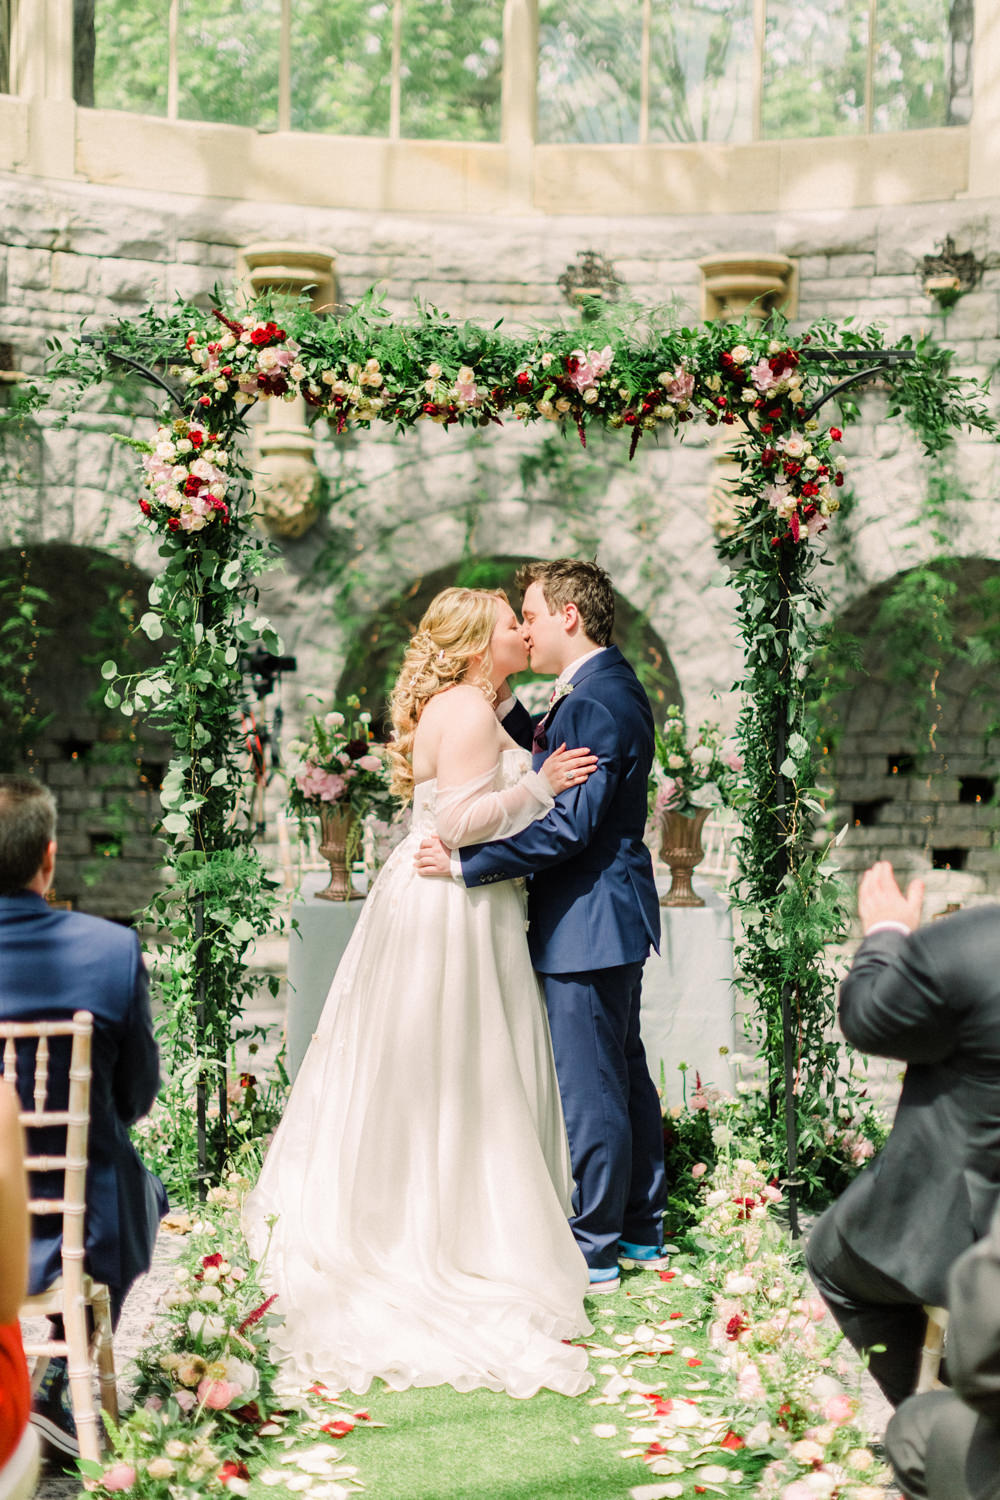 Flower Arch Backdrop Ceremony Aisle Greenery Petals Red Tortworth Court Wedding Sanshine Photography